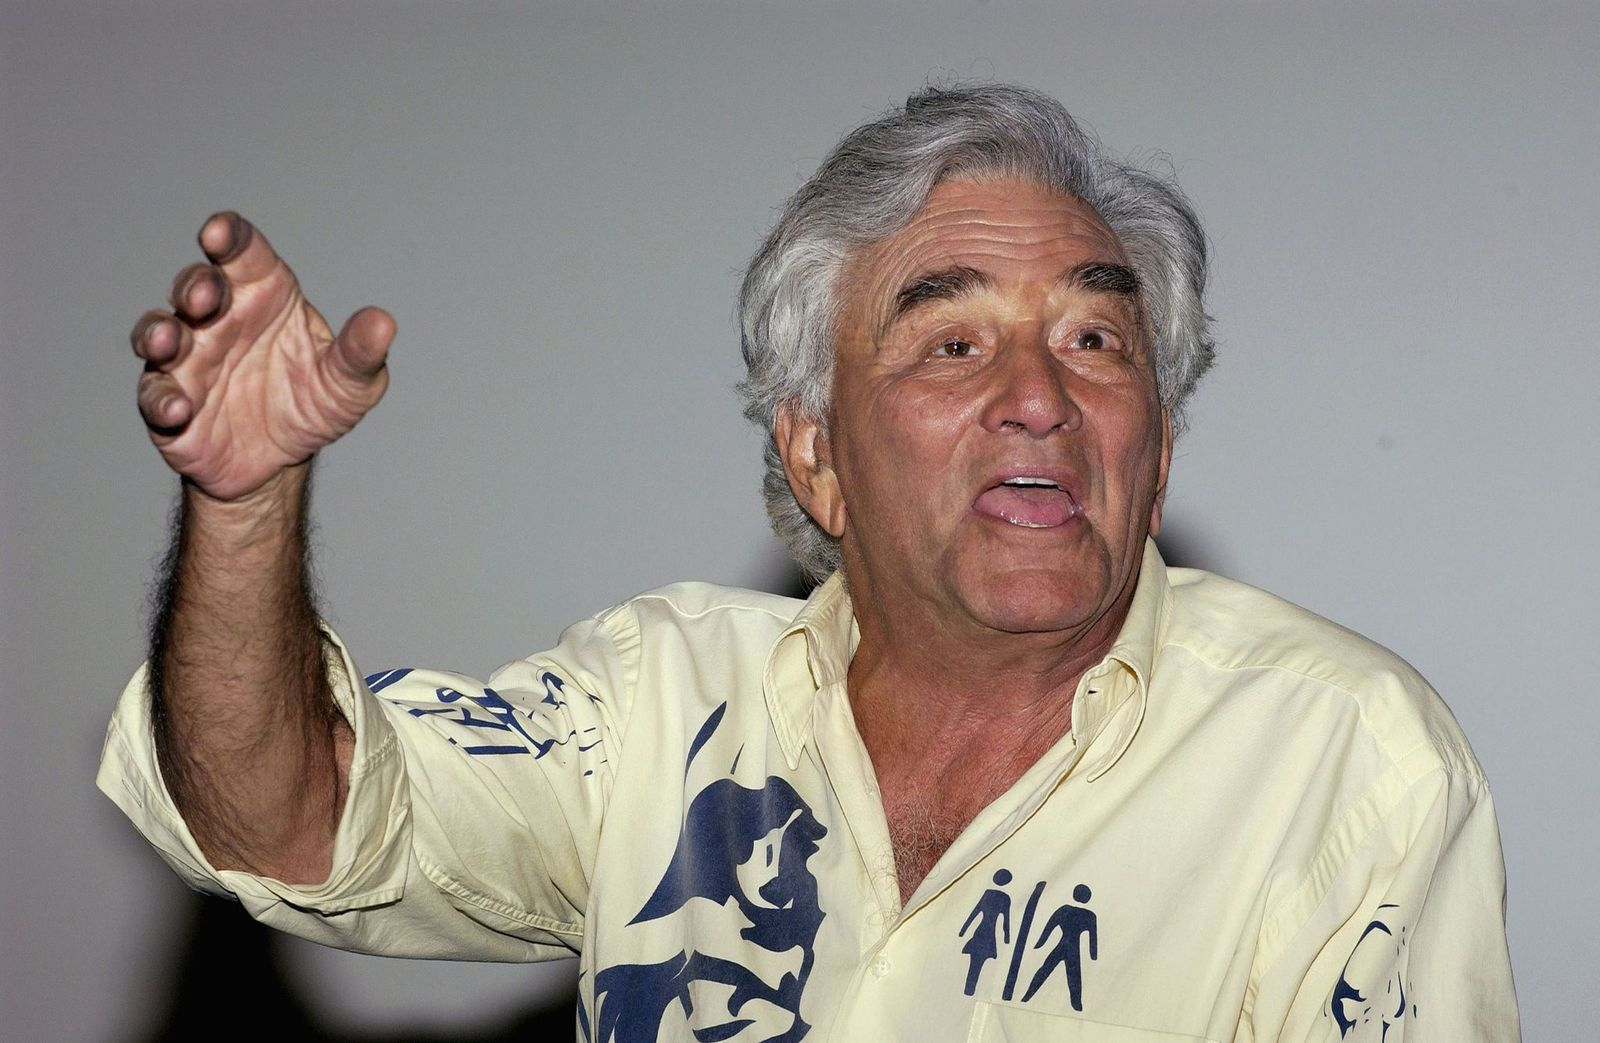 Peter Falk during a 2005 question and answer session in Arclight Theaters. | Photo: Getty Images